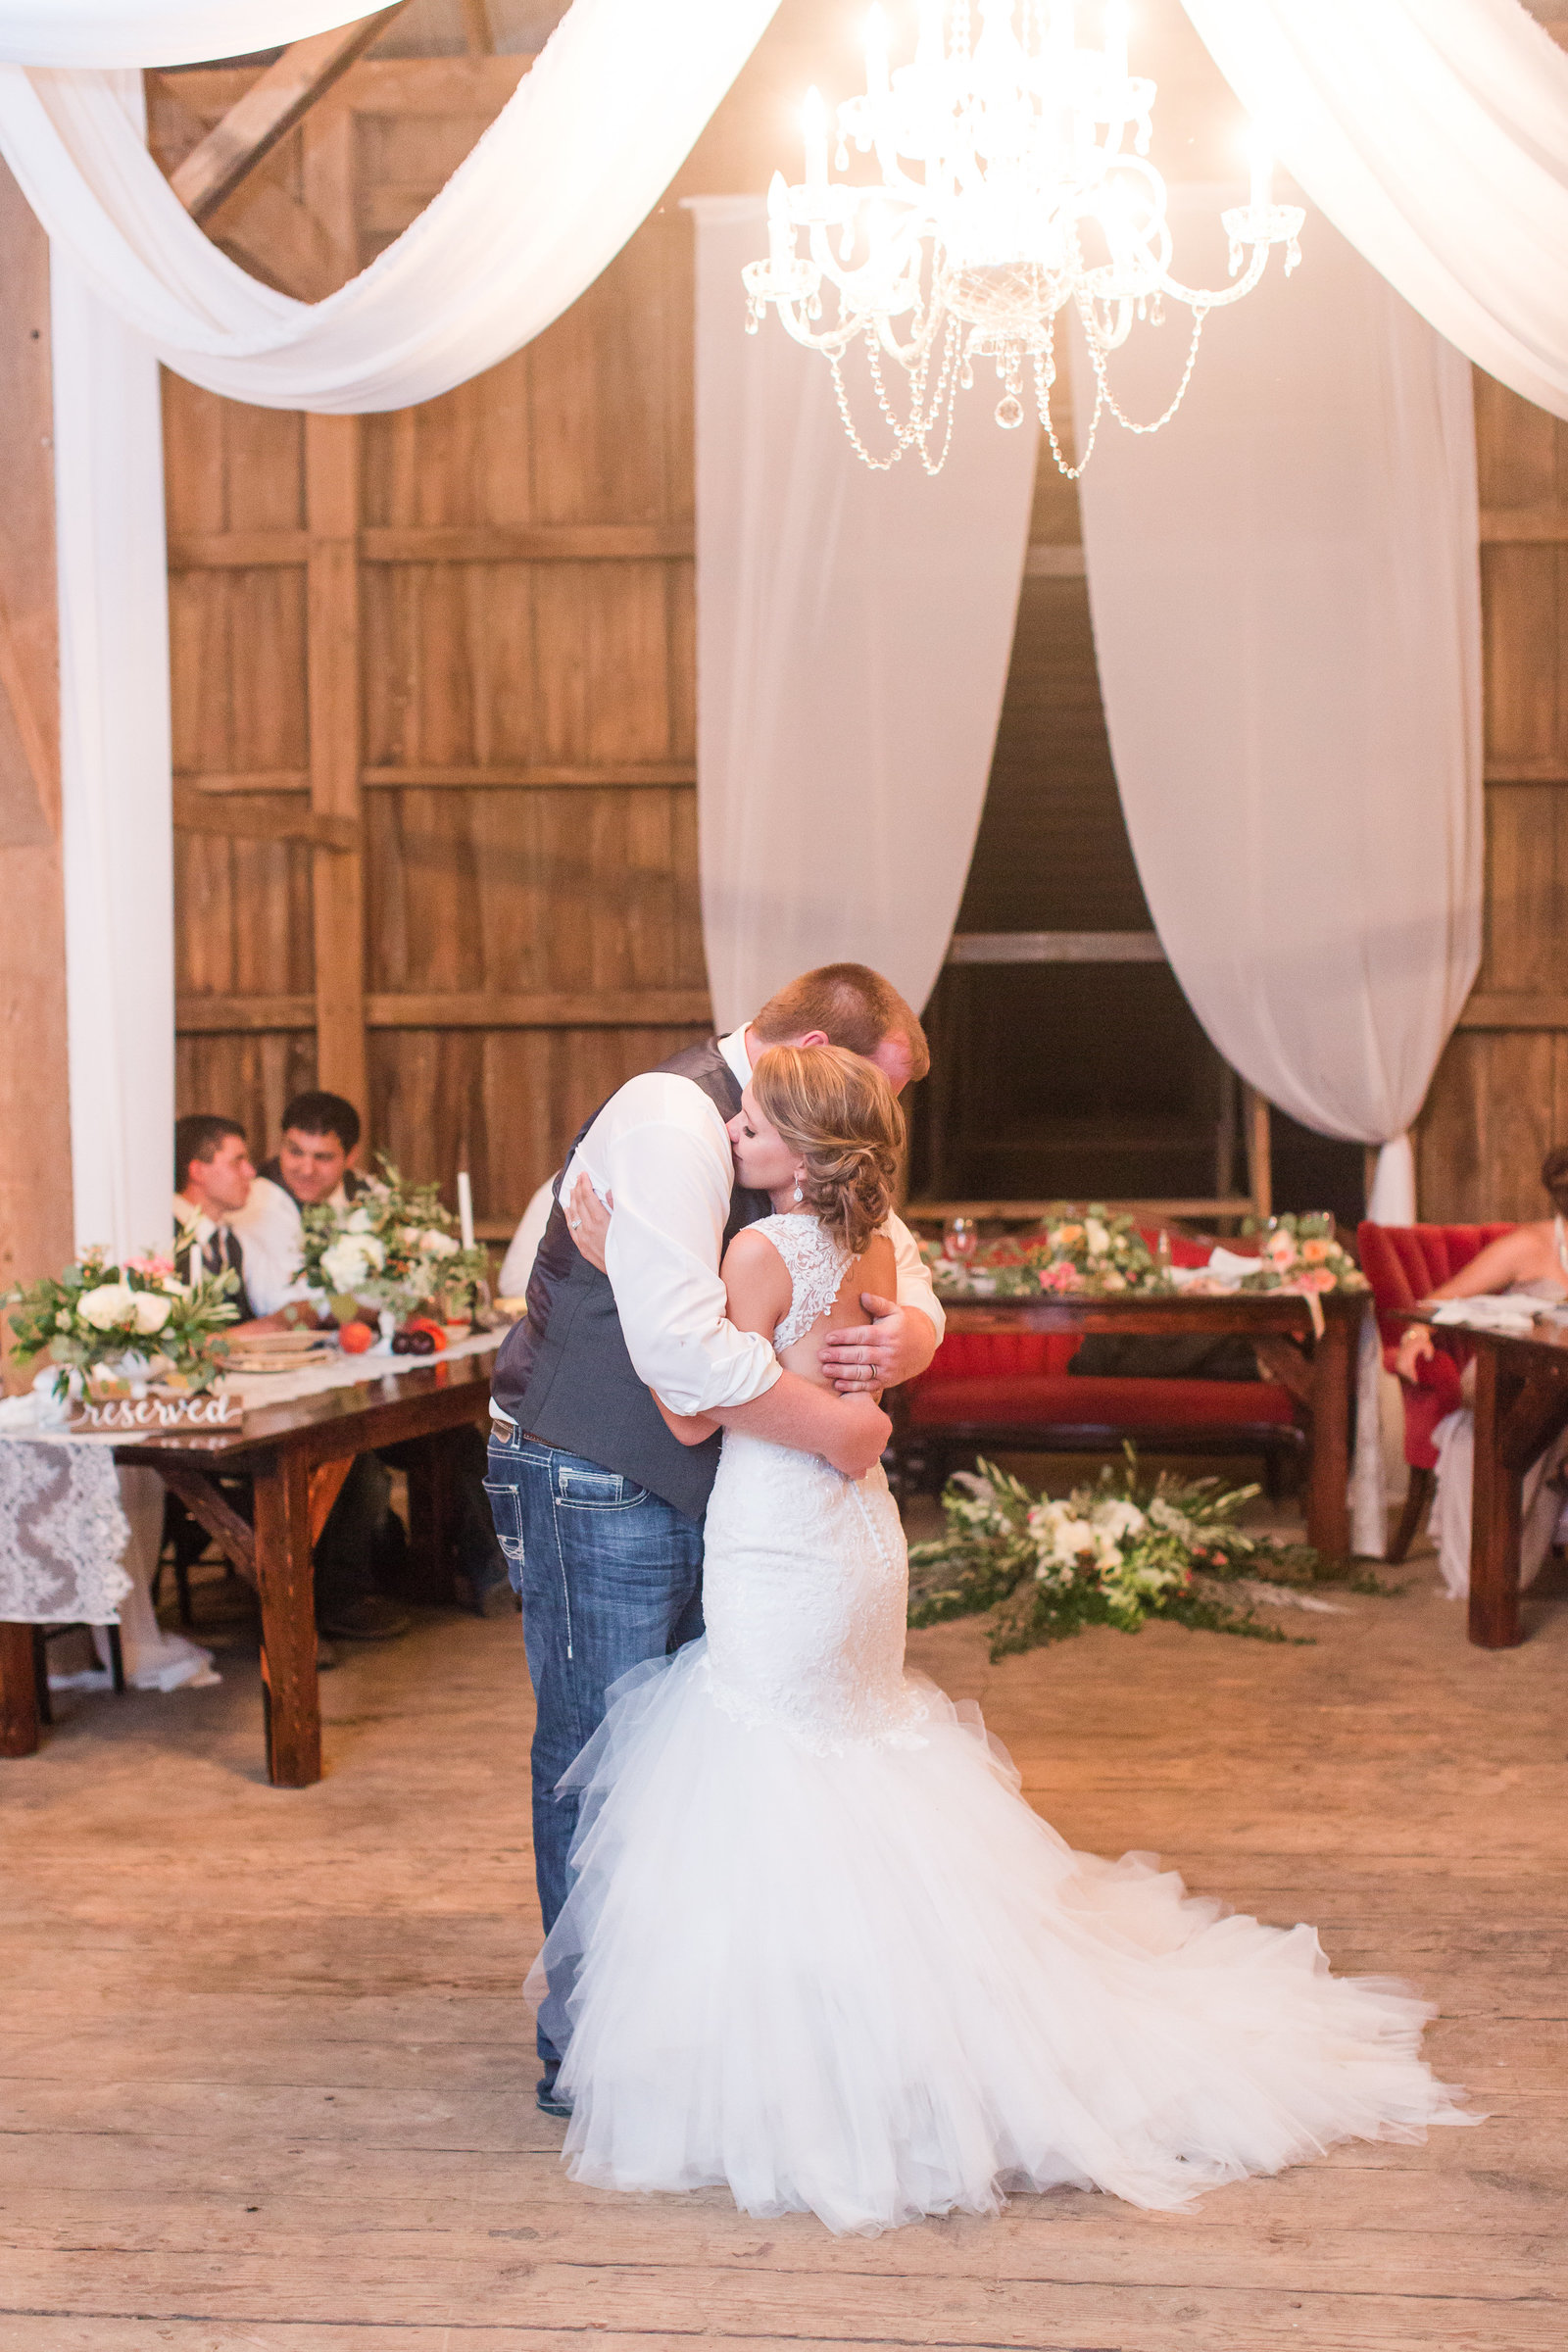 Rustic Wedding Chic Submission Mandy Matt s Wedding-Rustic Wedding Chi-0097